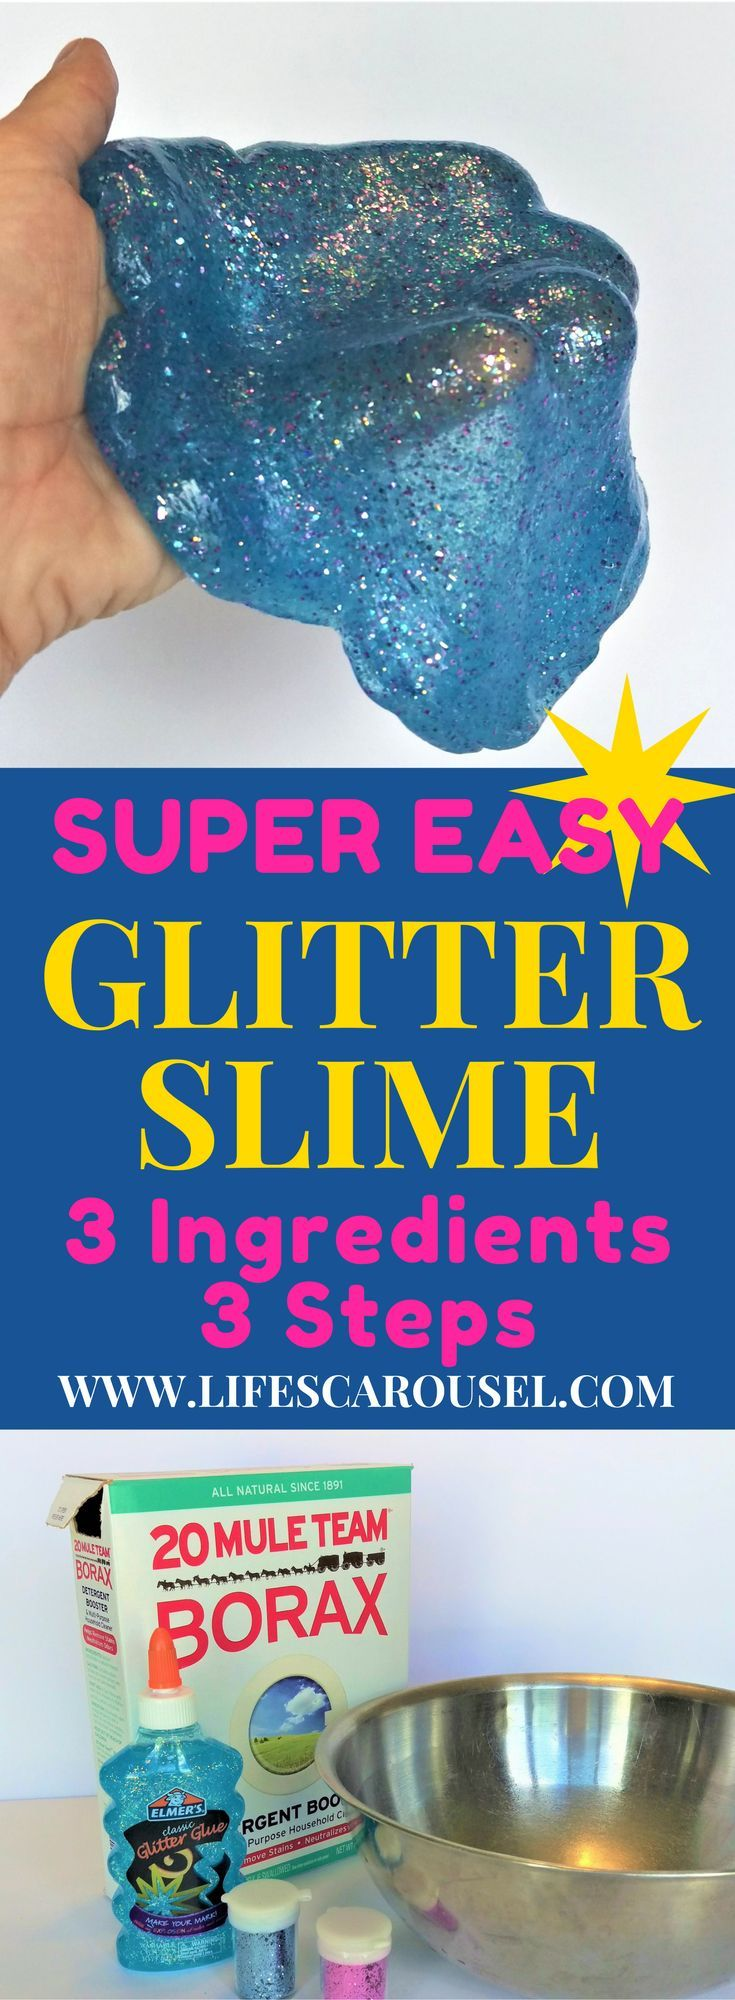 how to make slime with just glue and water